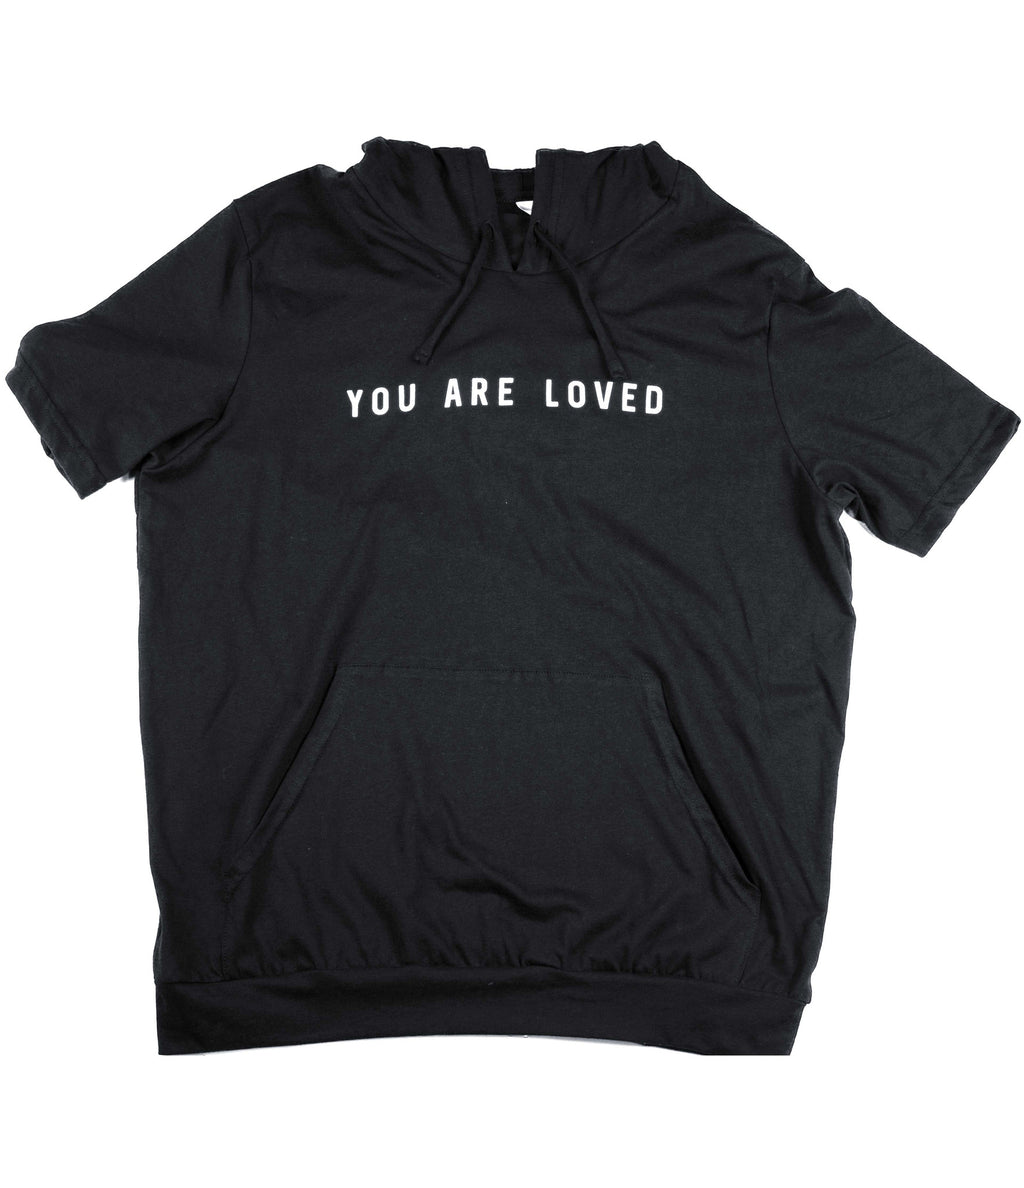 YOU ARE LOVED BLACK JERSEY SHORT SLEEVE HOODIE